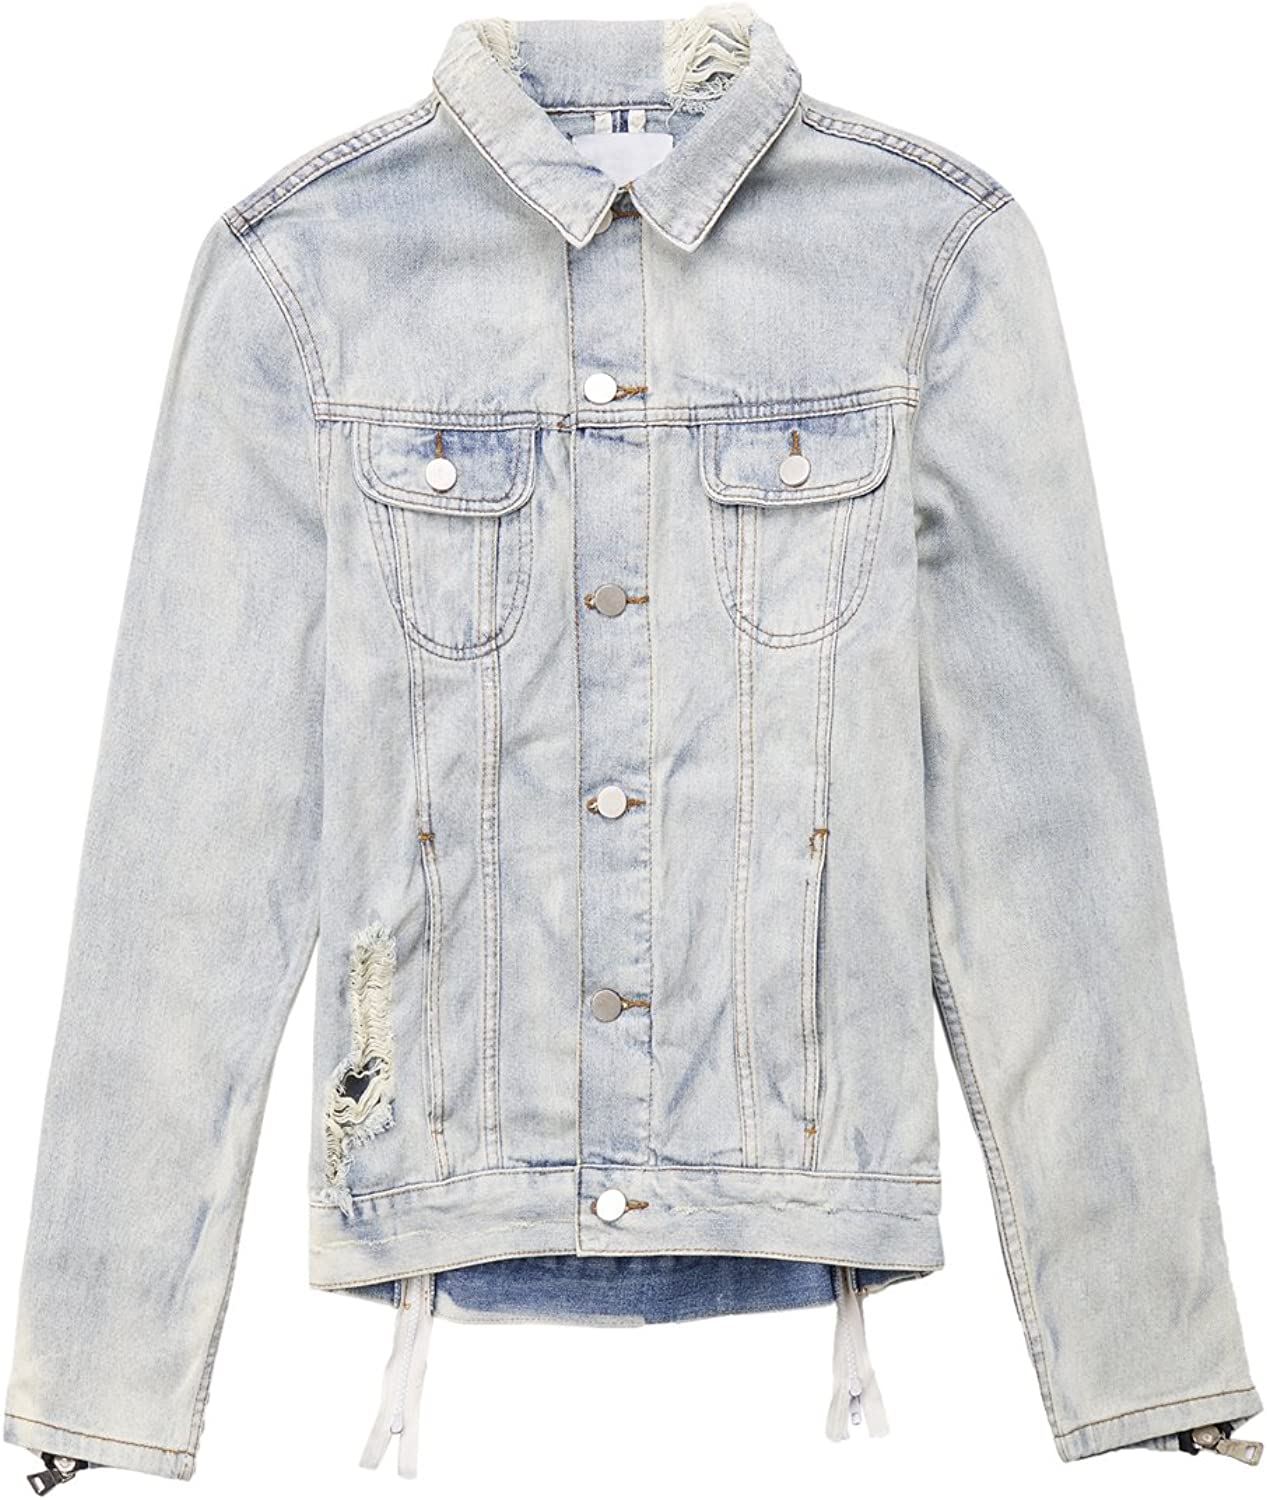 607f37c1d ZHOUBU Men's Fashion Ripped Distressed Coat Collar Denim Jacket Jacket  Jacket With Hand Zippers d27d57